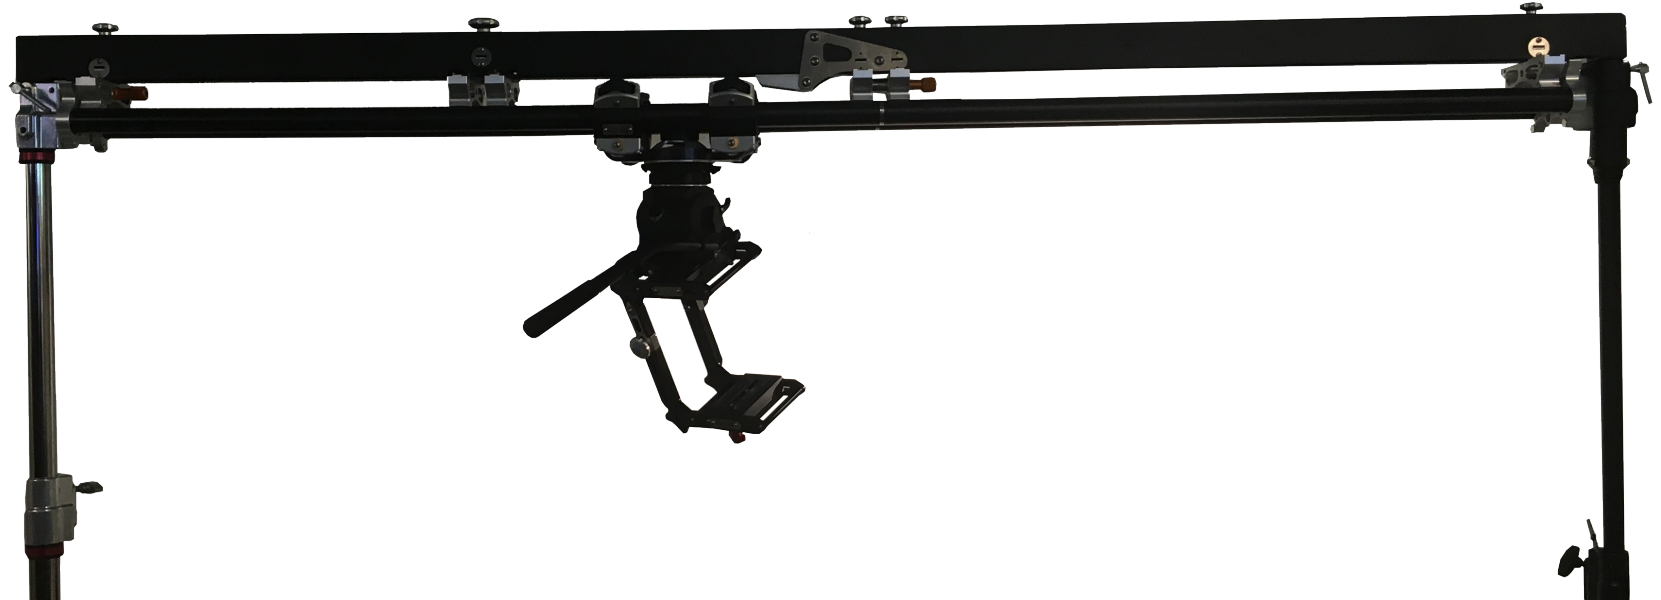 Camera Undersling - Underslung by - Prosup Professional Camera Support